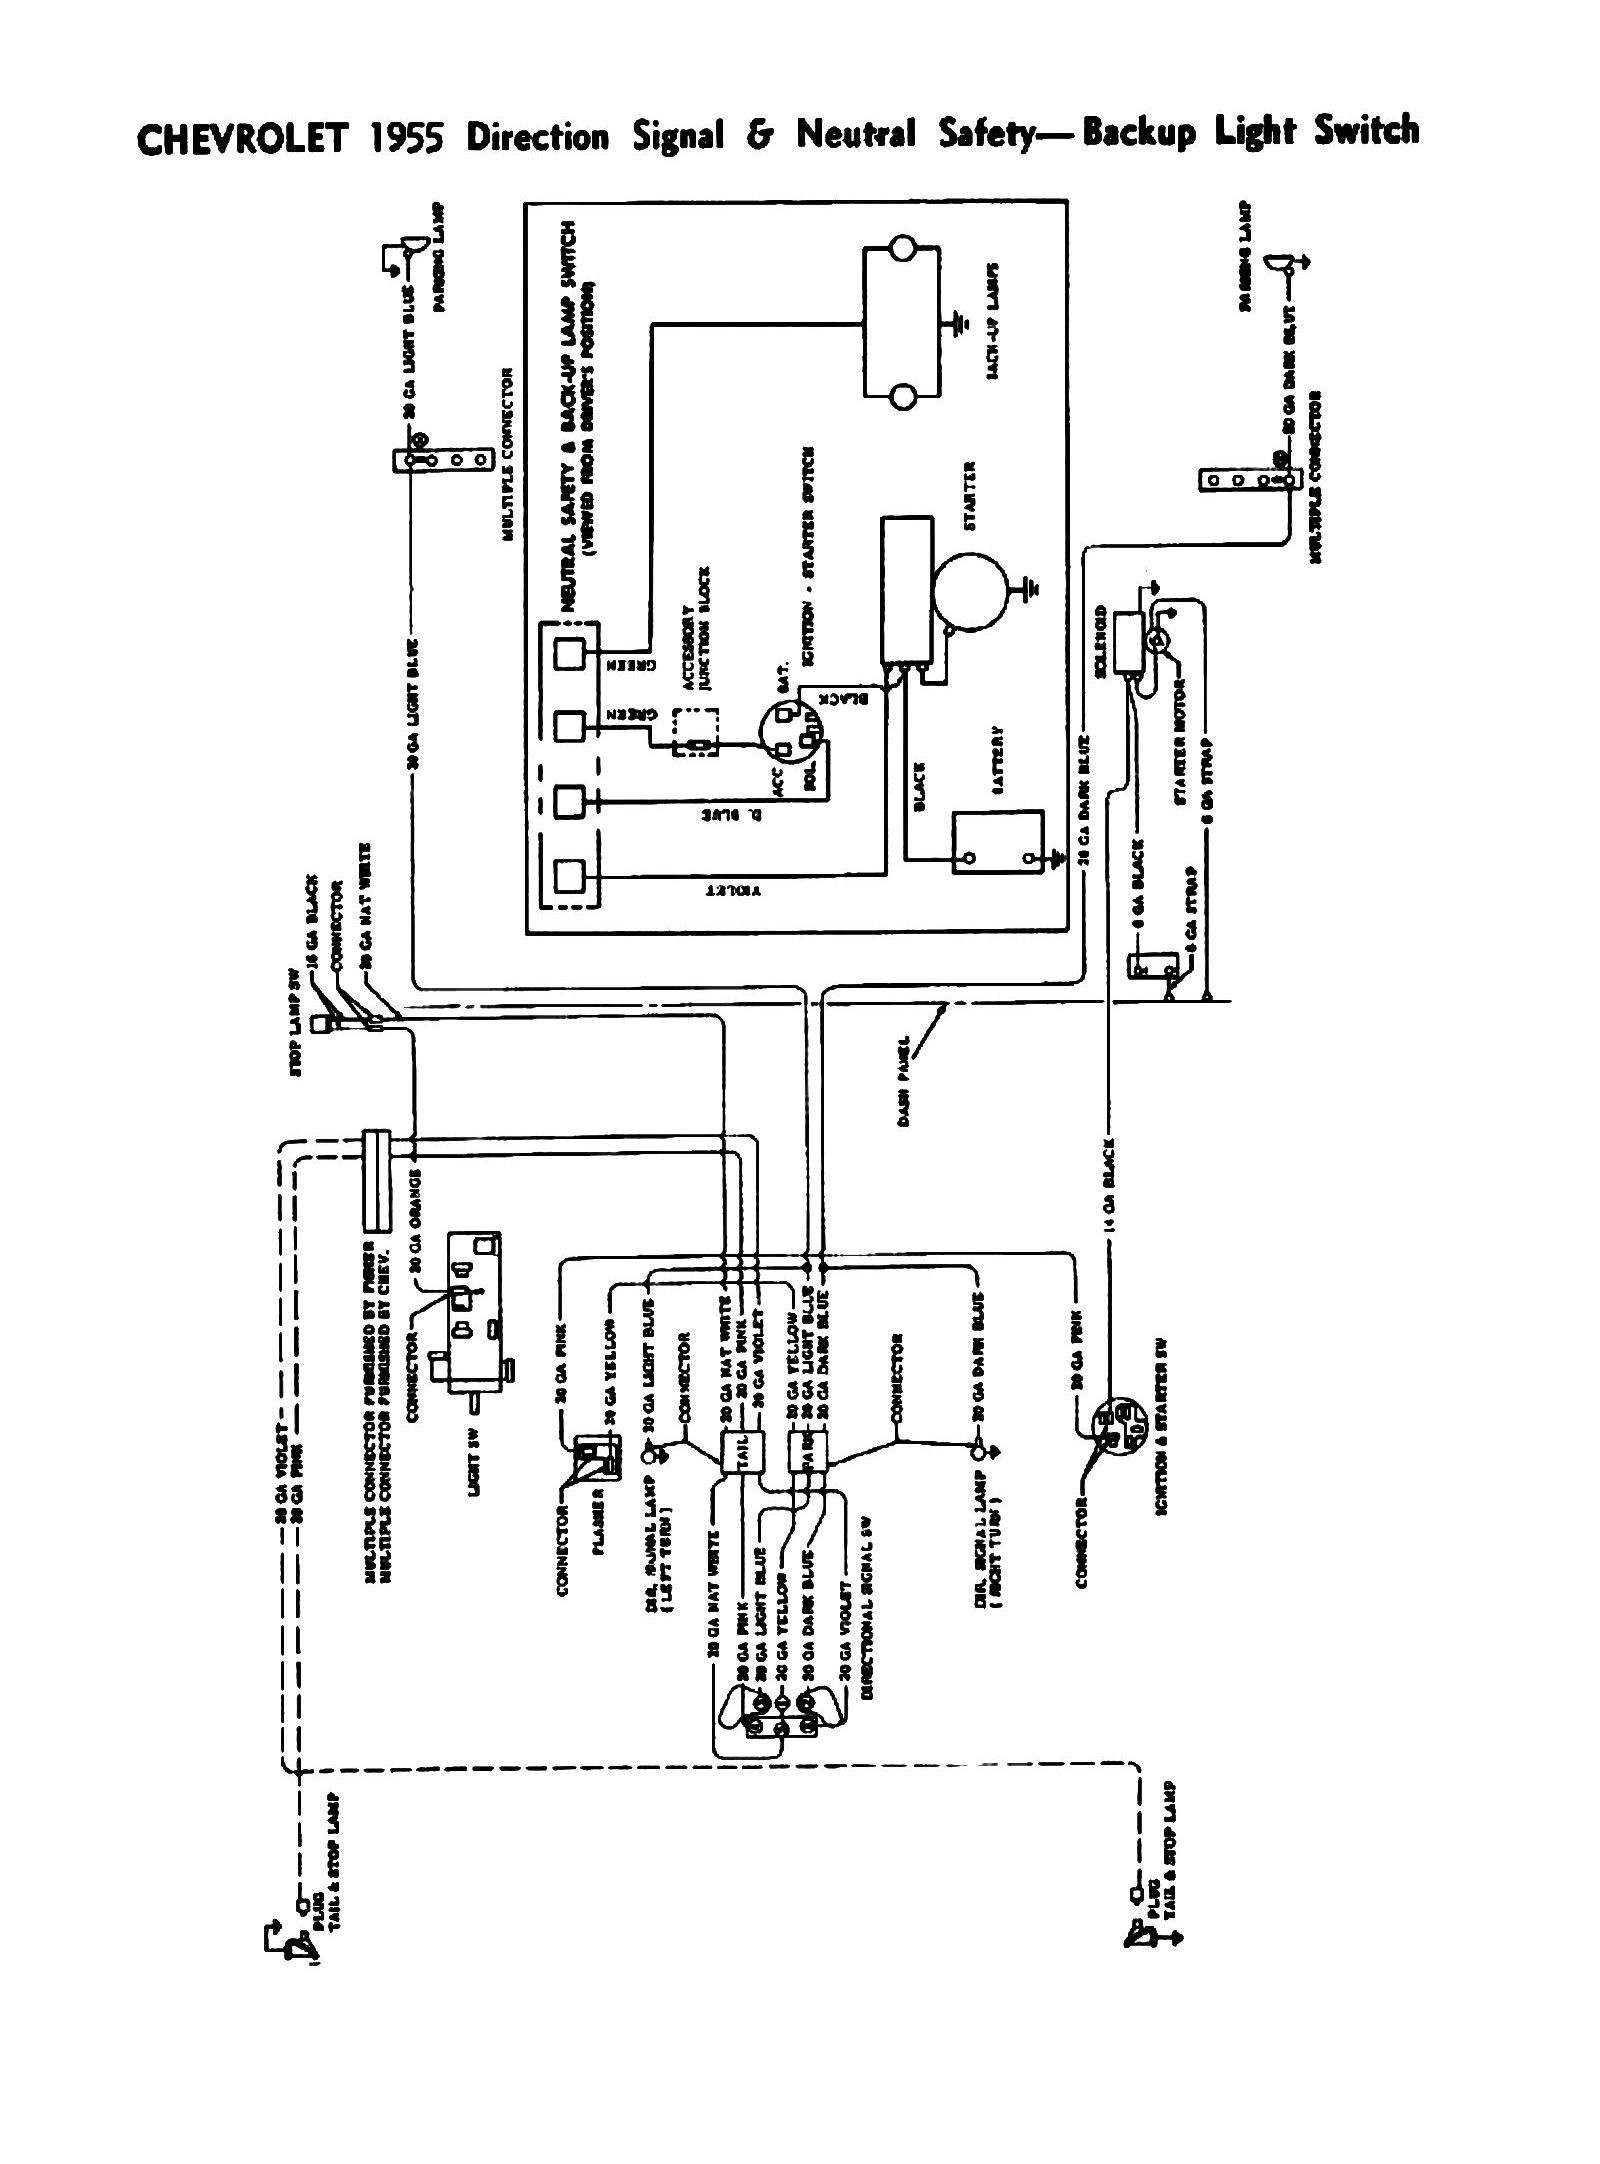 mtd ignition switch wiring diagram | free wiring diagram wire diagram mtd 13aq673g120 wiring diagram mtd zero turn #4